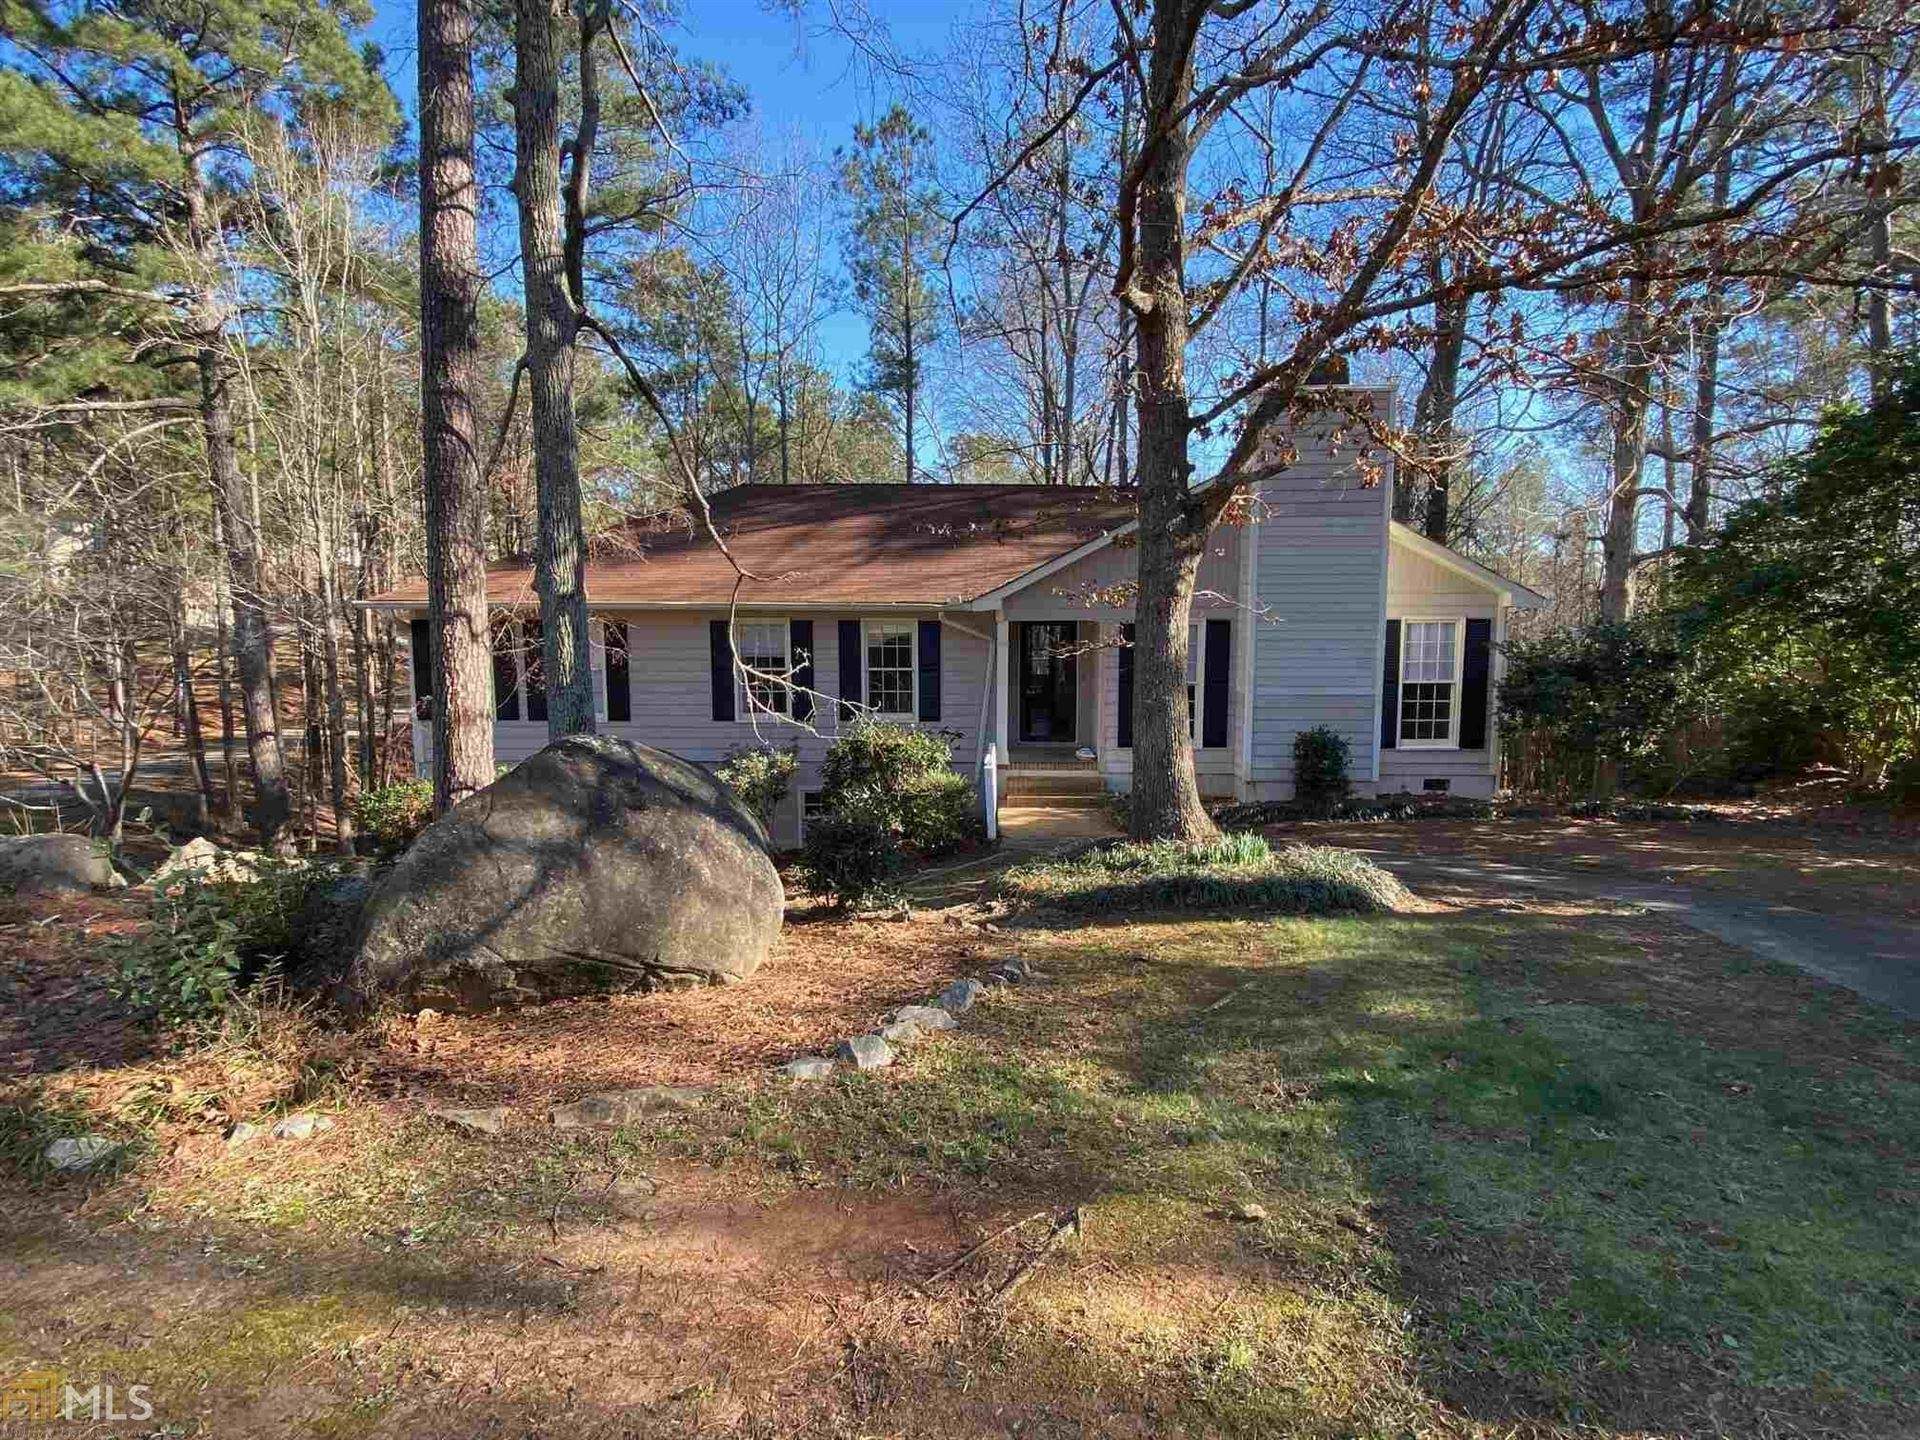 136 River Forest Dr, Macon, GA 31211 - MLS#: 8970094